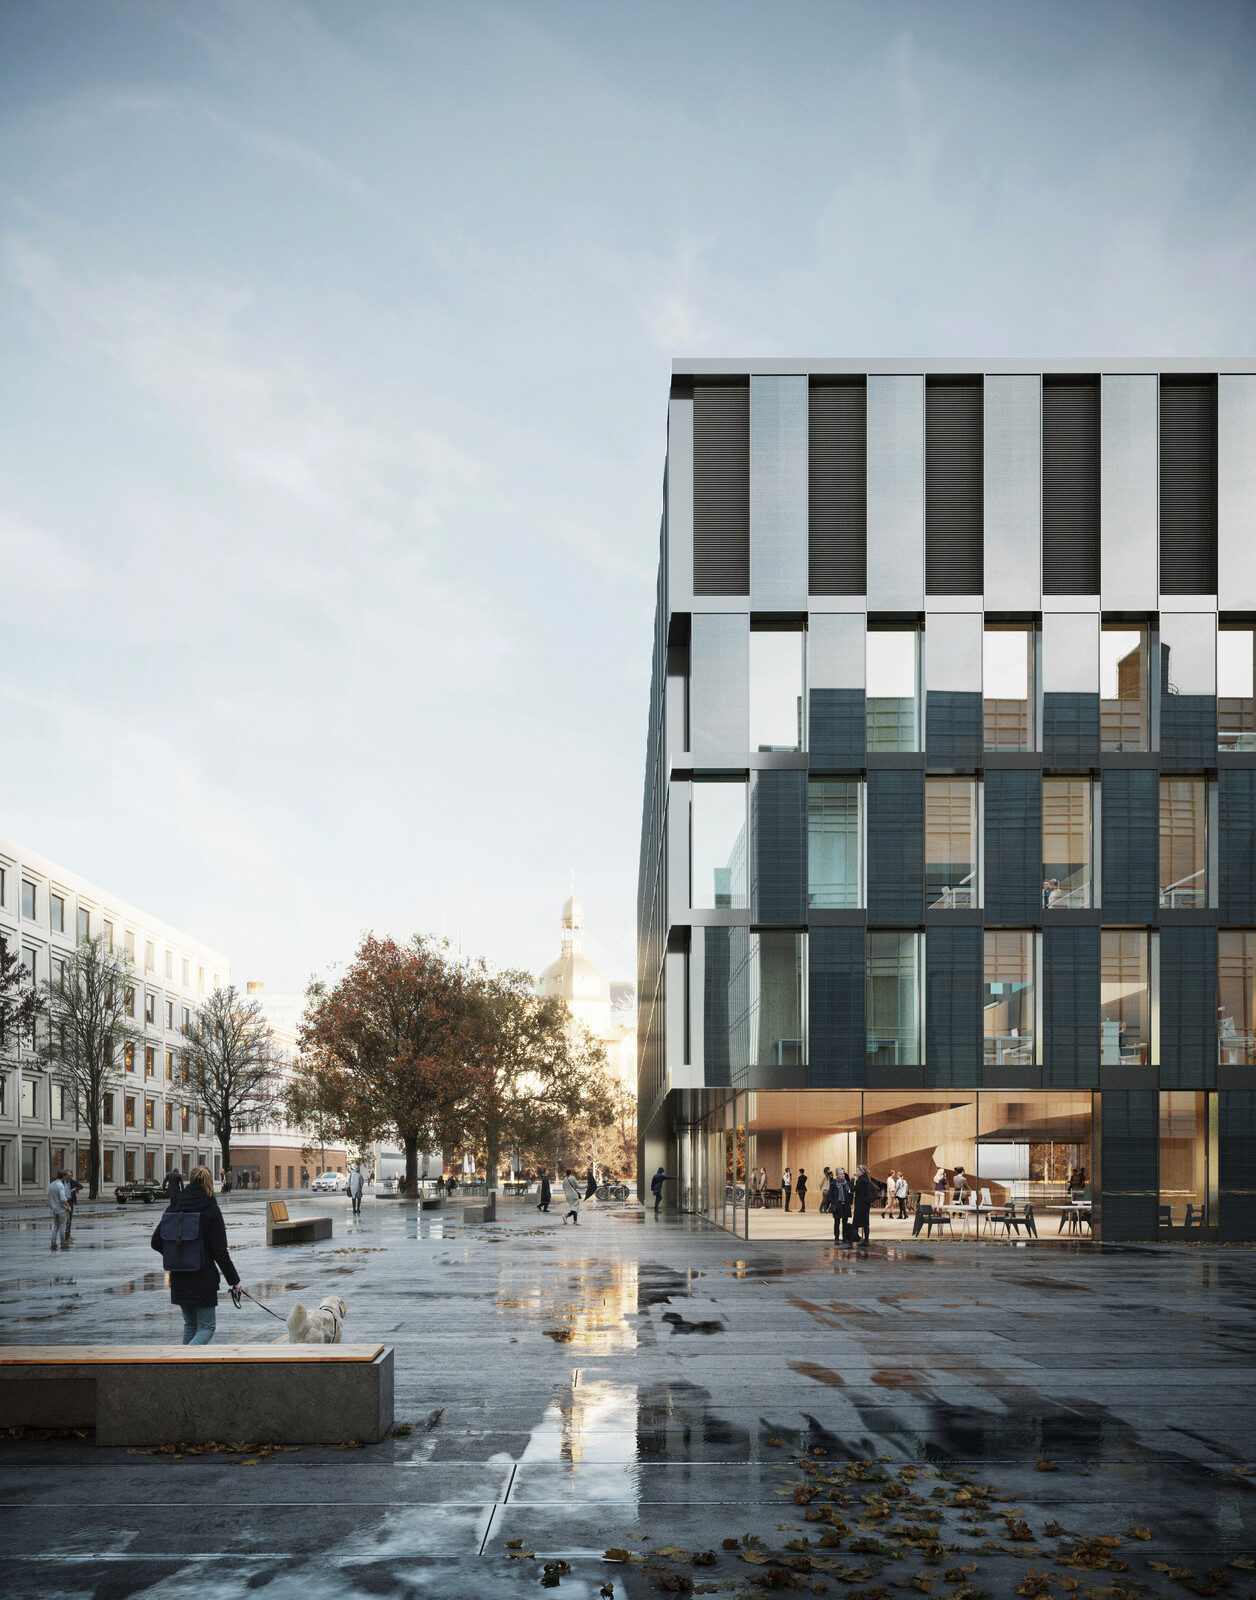 Data Processing Center at Mannheim, Germany designed by Burckhardt Partner. Image by PLAY-TIME